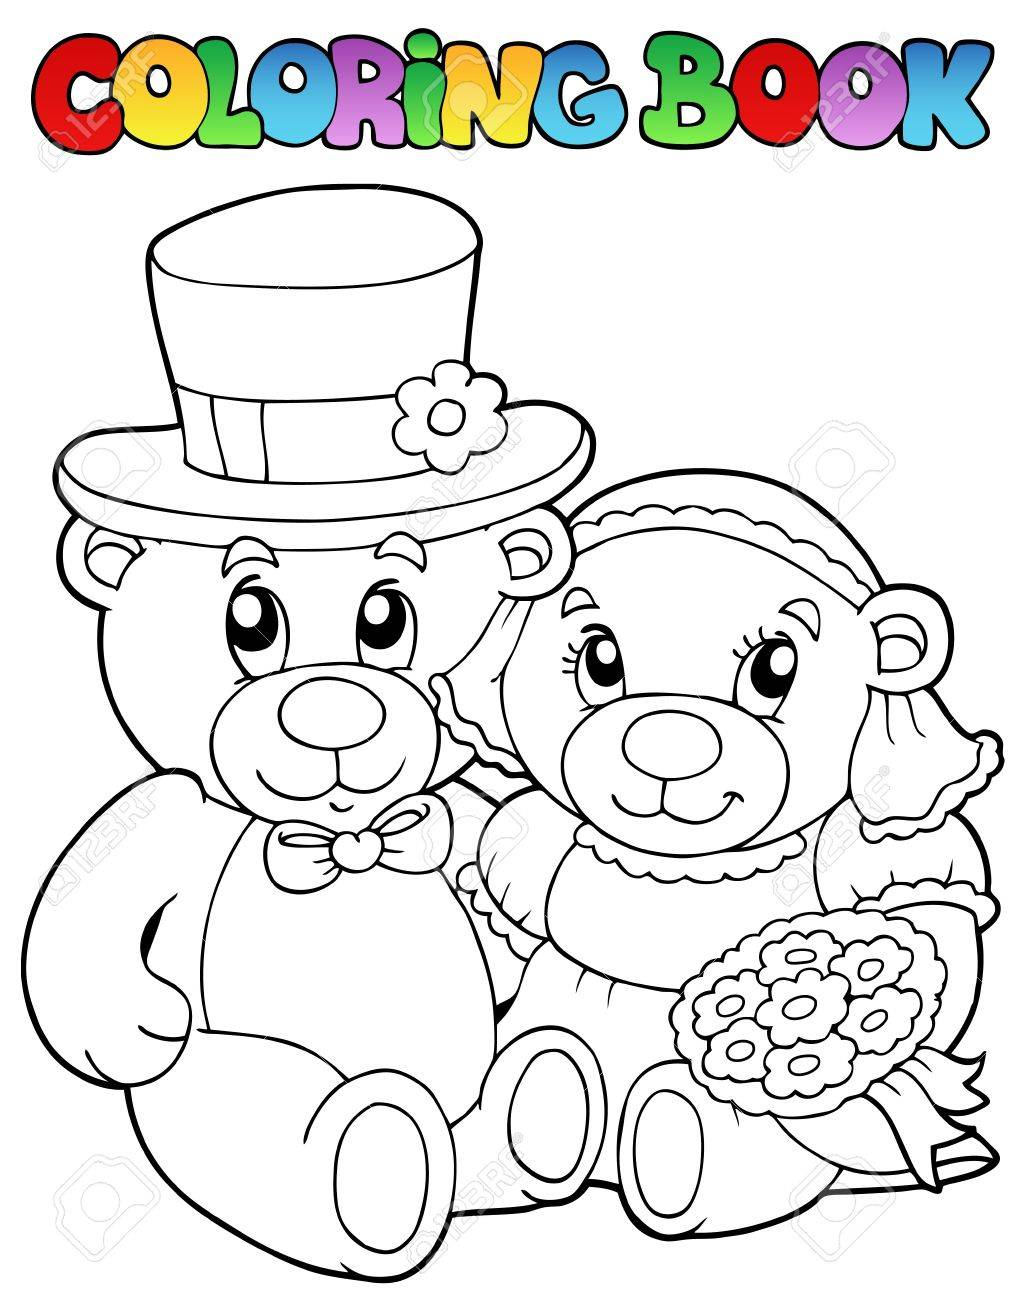 Coloring book wedding pictures - Coloring Book With Wedding Bears Vector Illustration Stock Vector 9353074